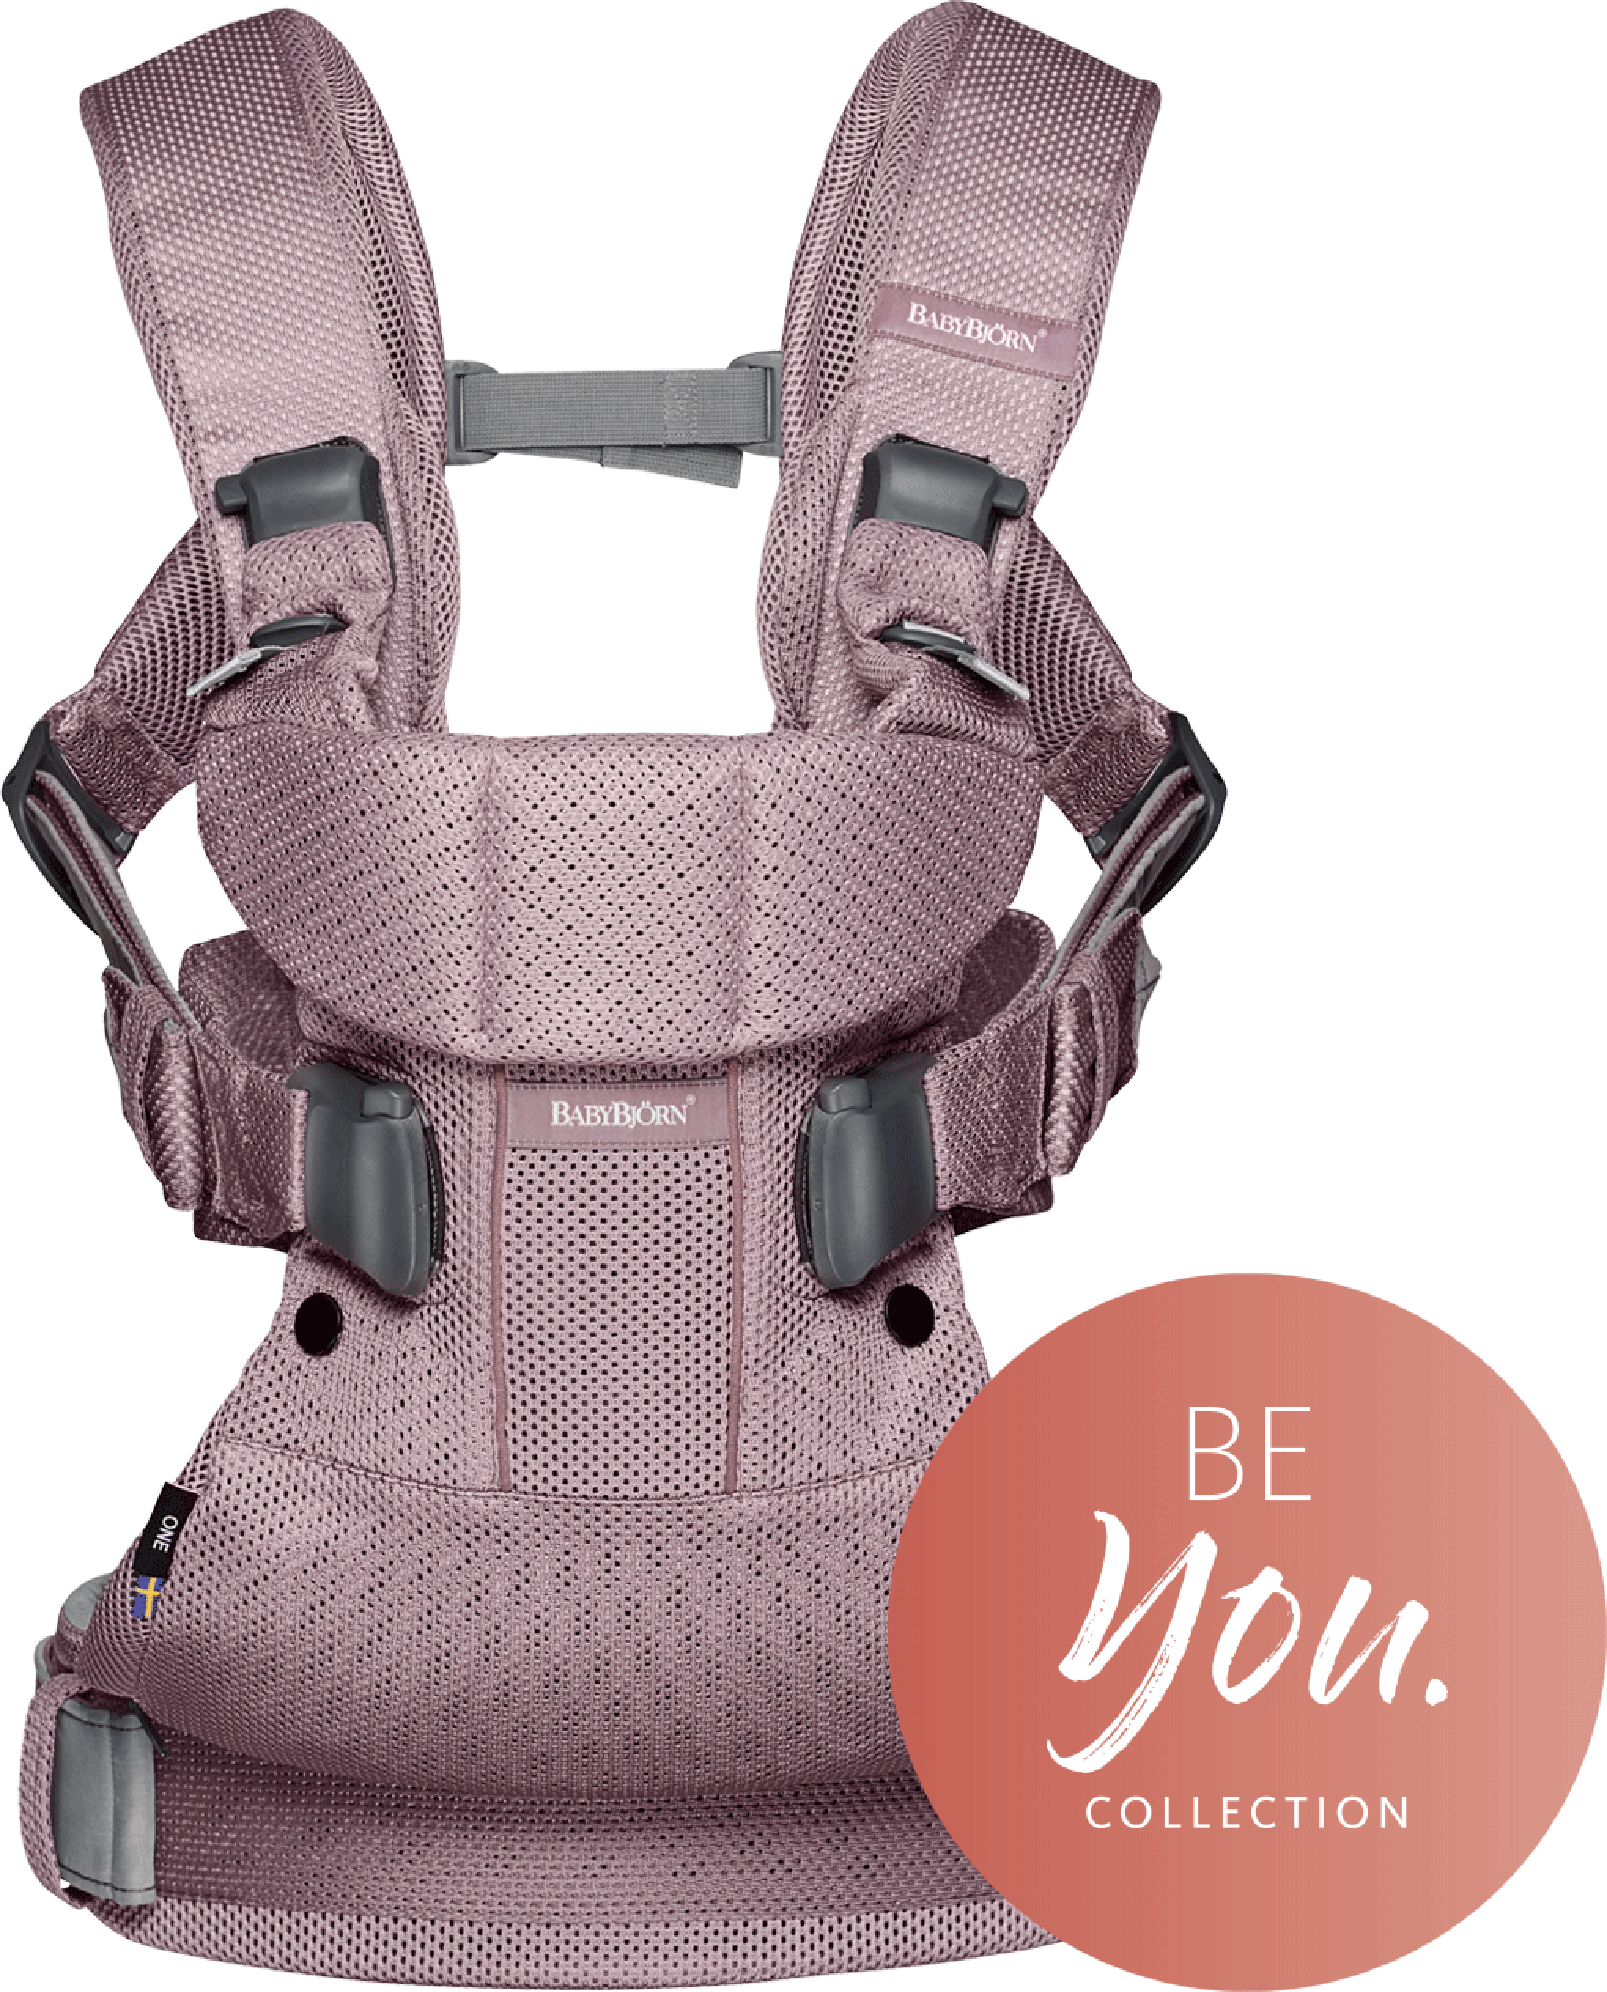 BABYBJÖRN Baby Carrier One Air in lavender violet mesh, an ergonomic baby carrier perfect for newborn up to 3 years.